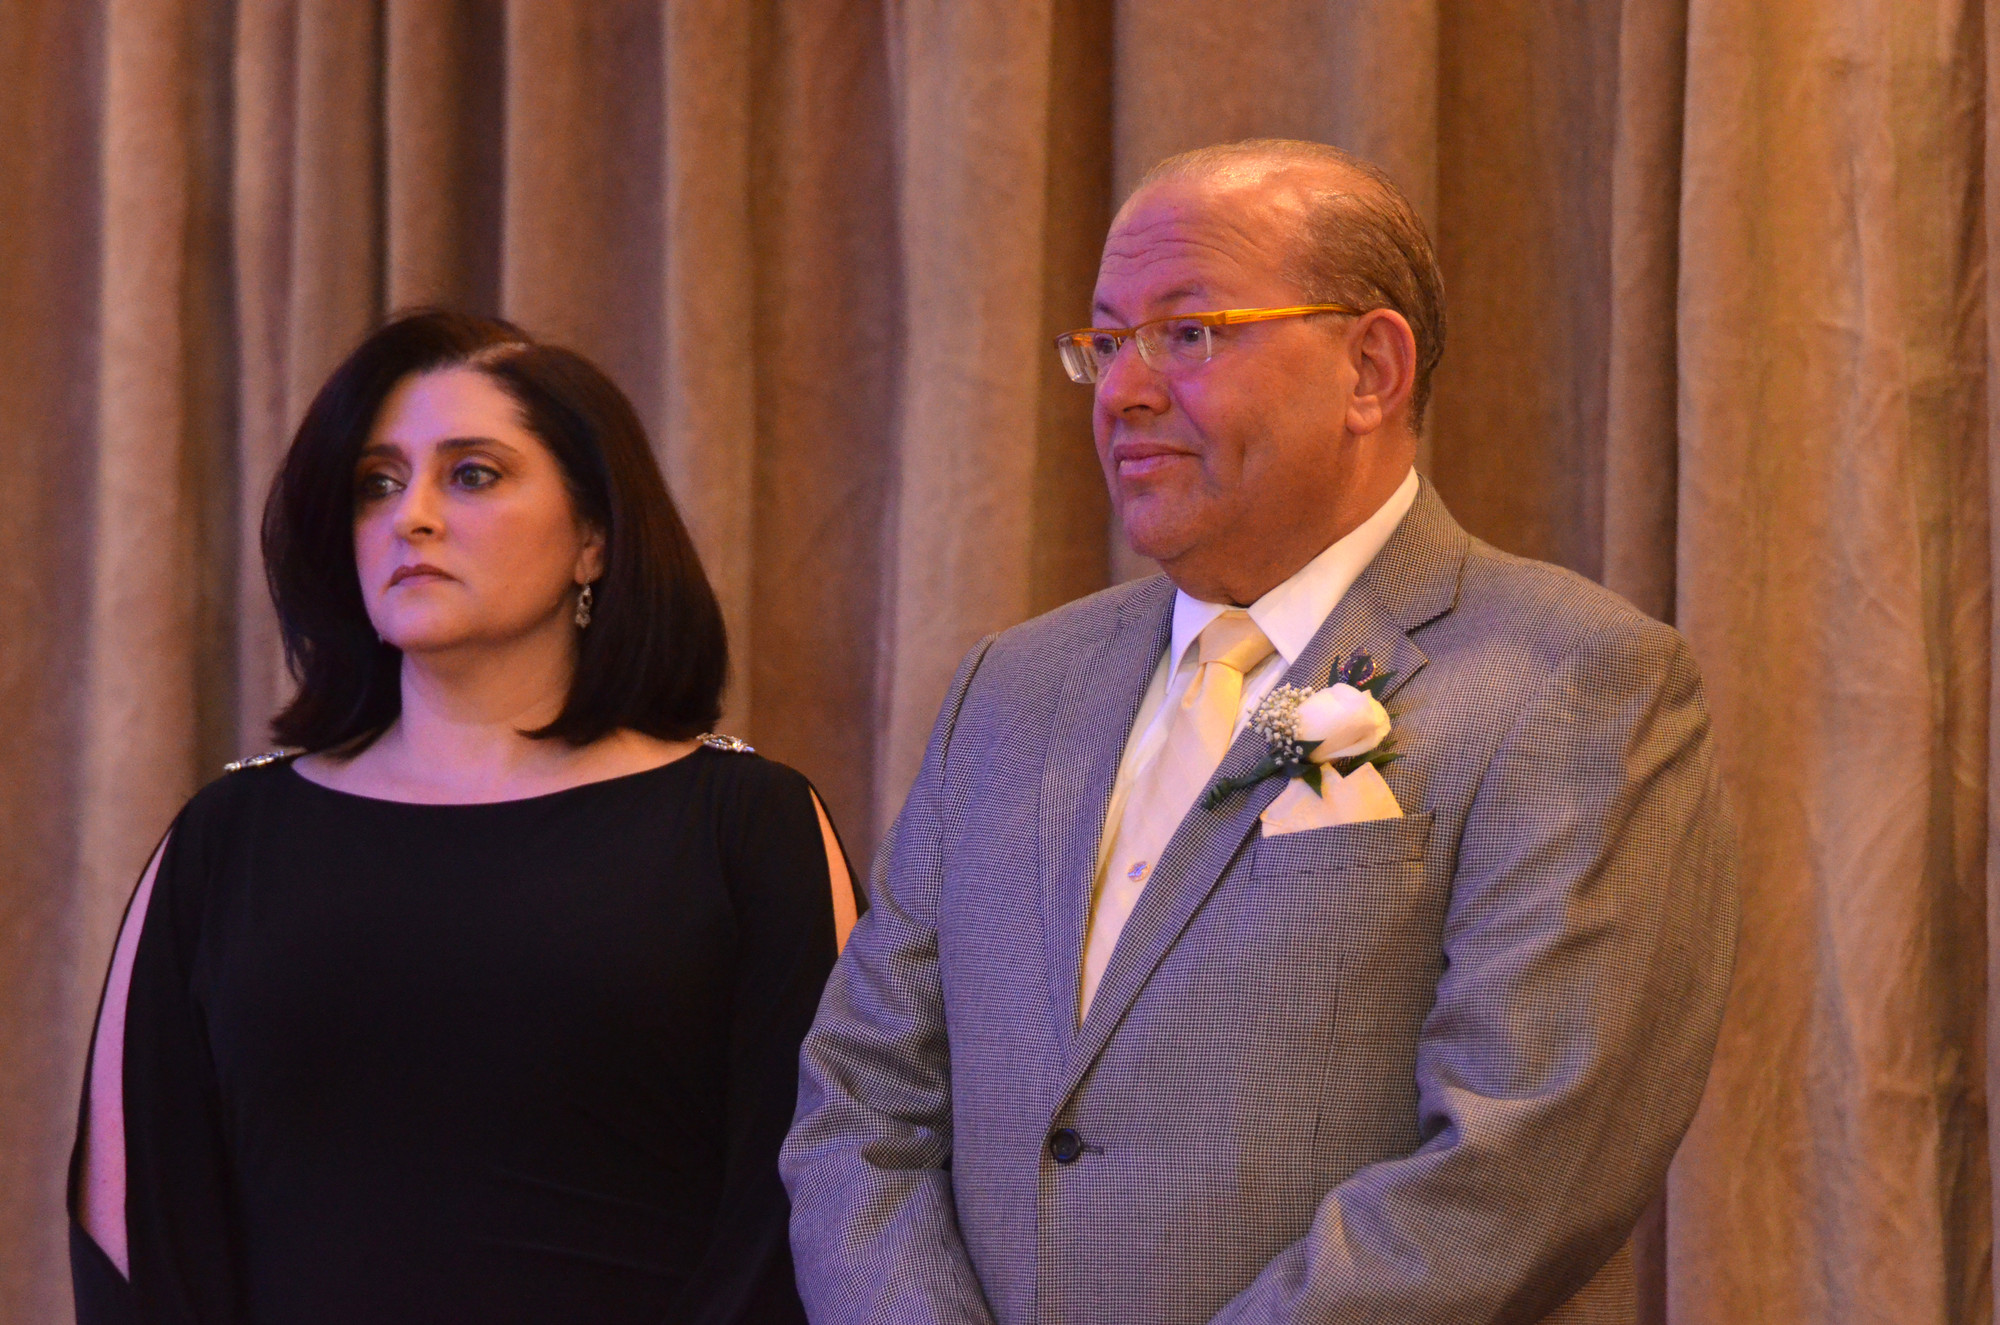 Immediate past PTA Council President Roxanne Rose and Town of Hempstead Councilman Gary Hudes were the night's major honorees.